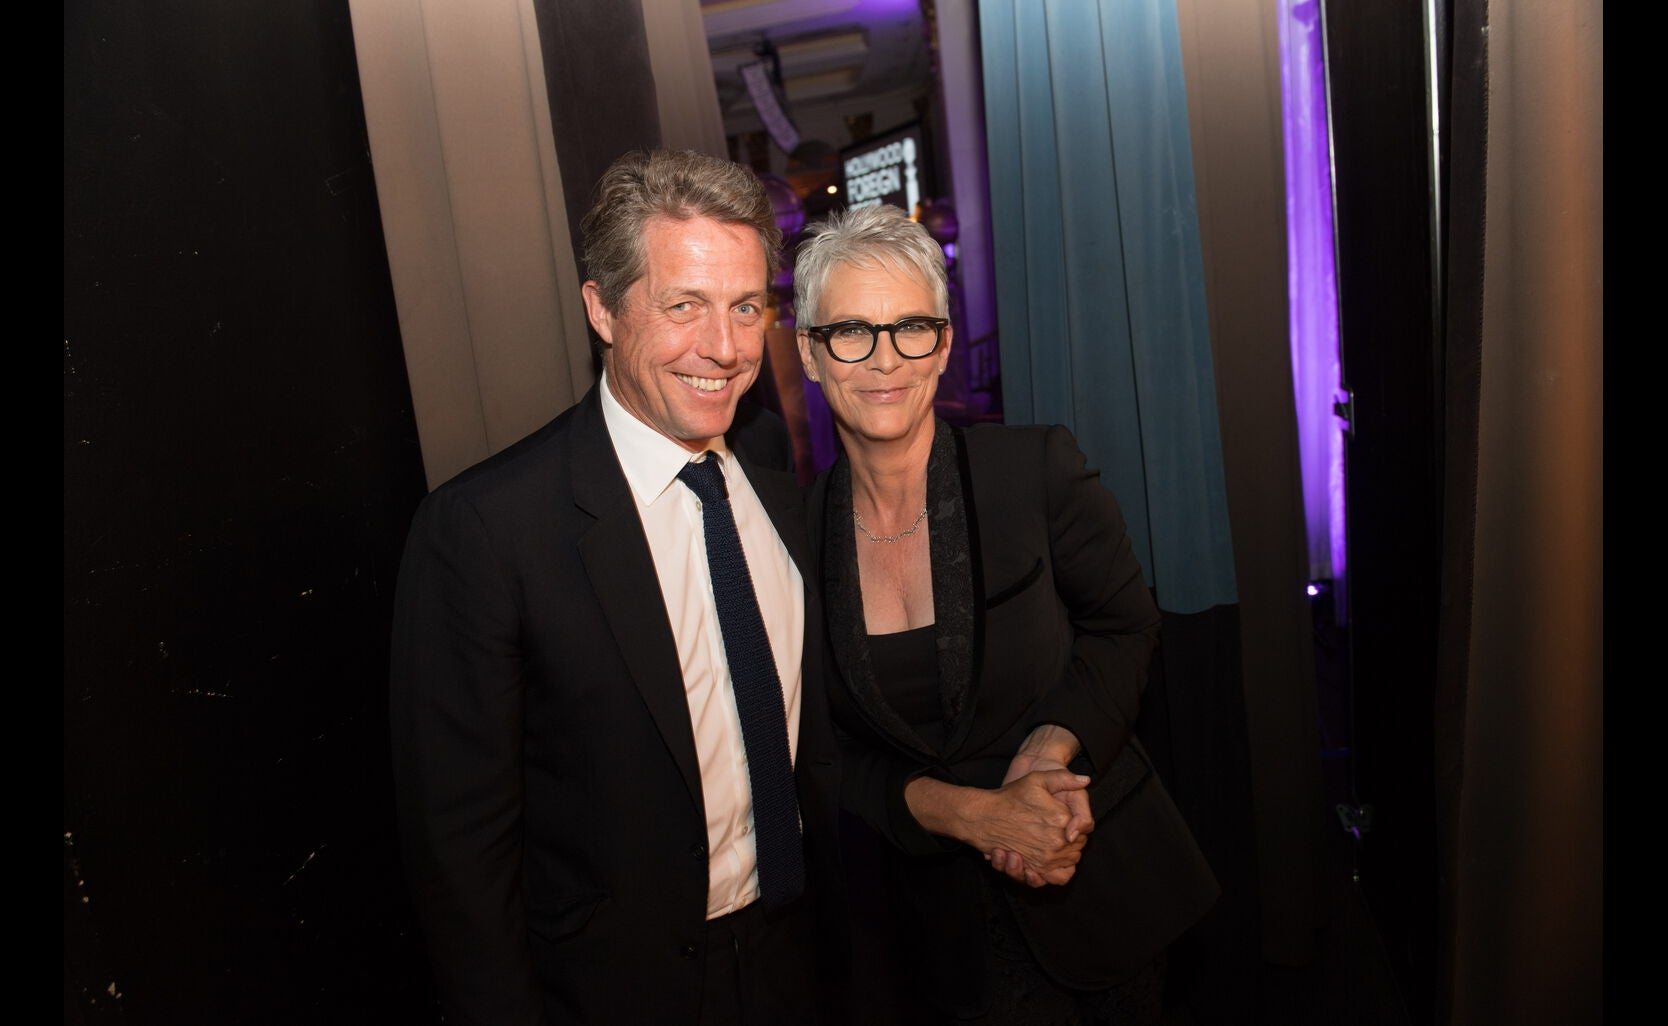 Jamie Lee Curtis and Hugh Grant at the HFPA Grants Banquet 2016